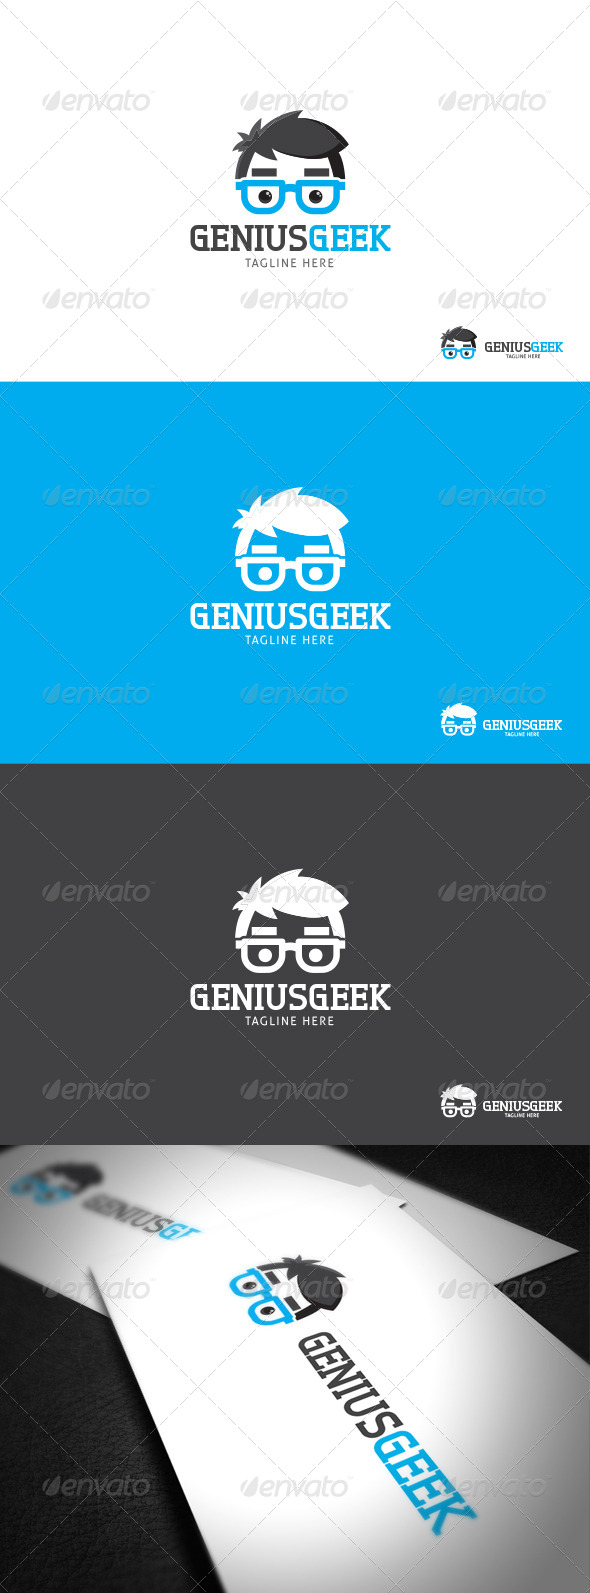 GraphicRiver Genius Geek logo Template 7966204